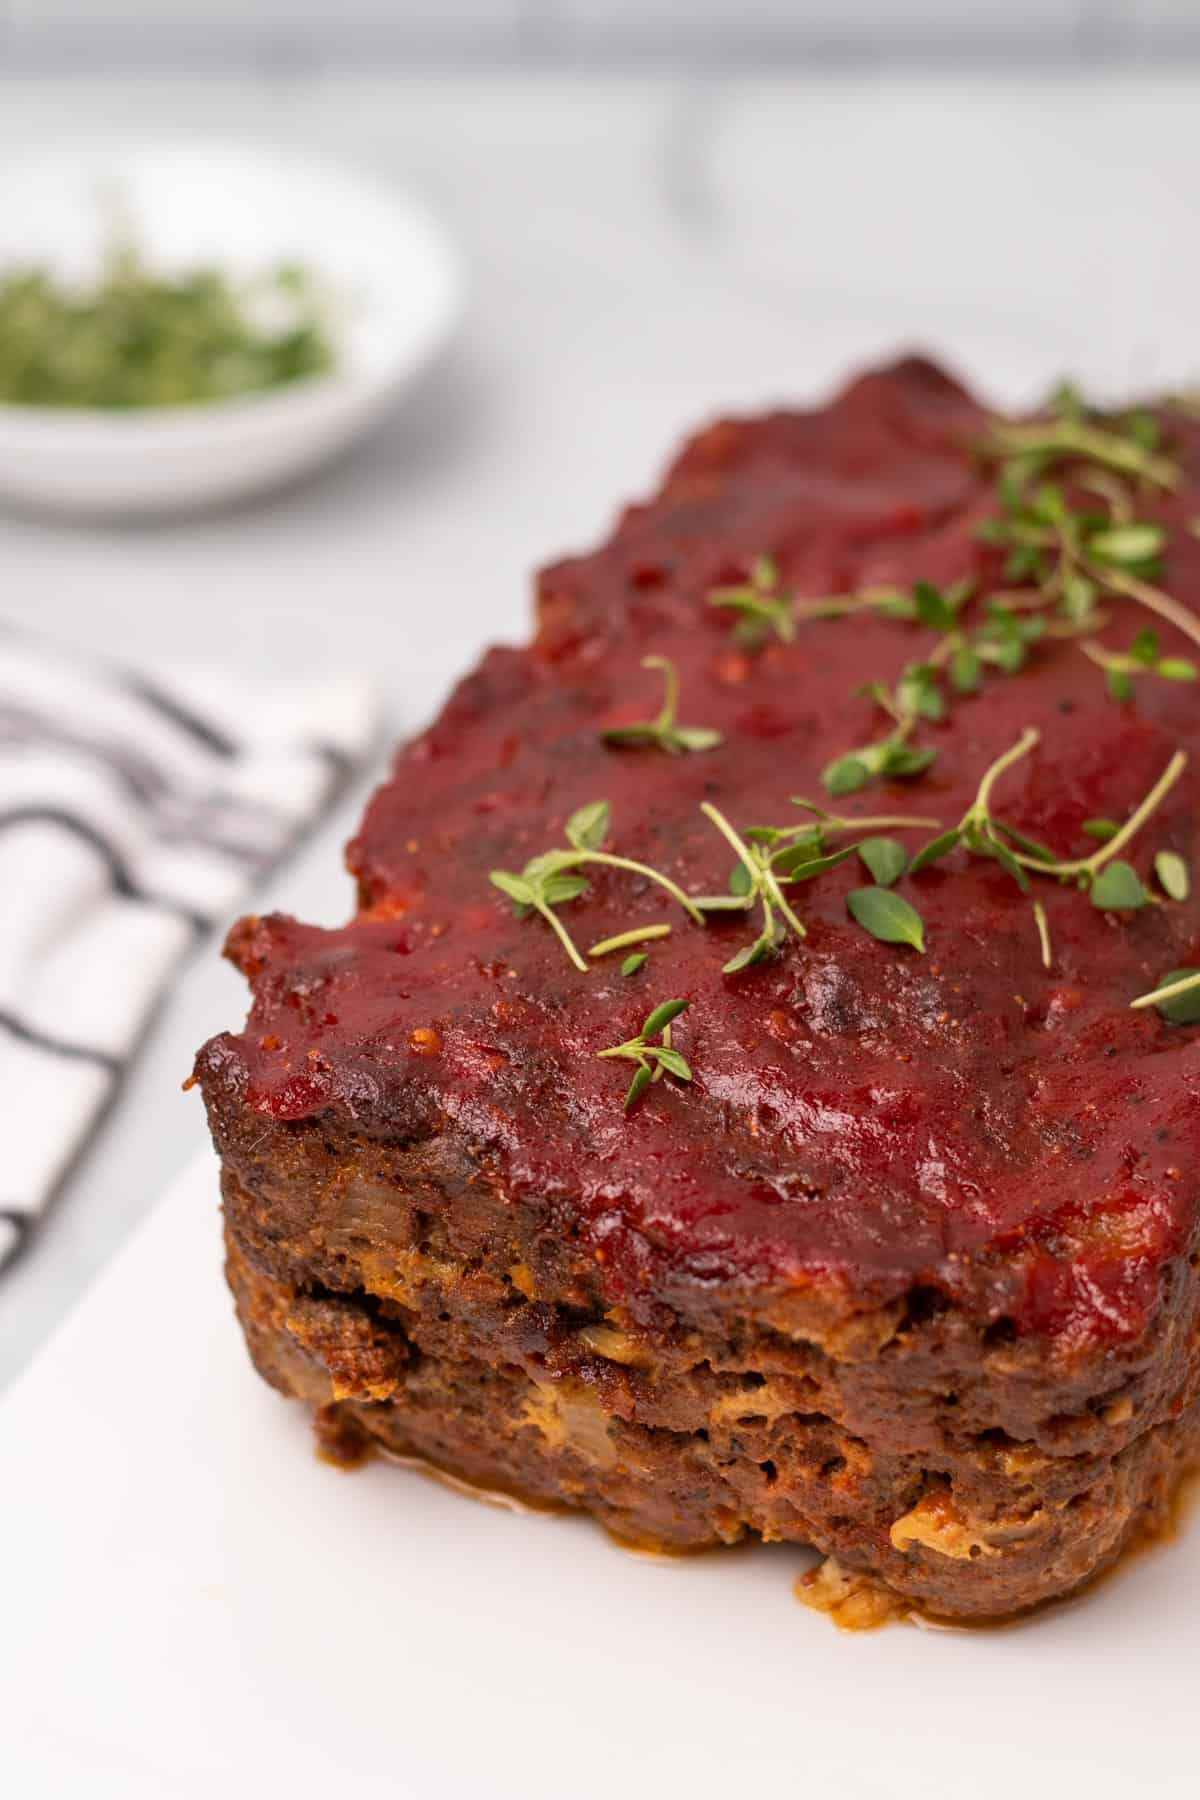 Keto Meatloaf with tomato topping and fresh thyme garnish on a white cutting board